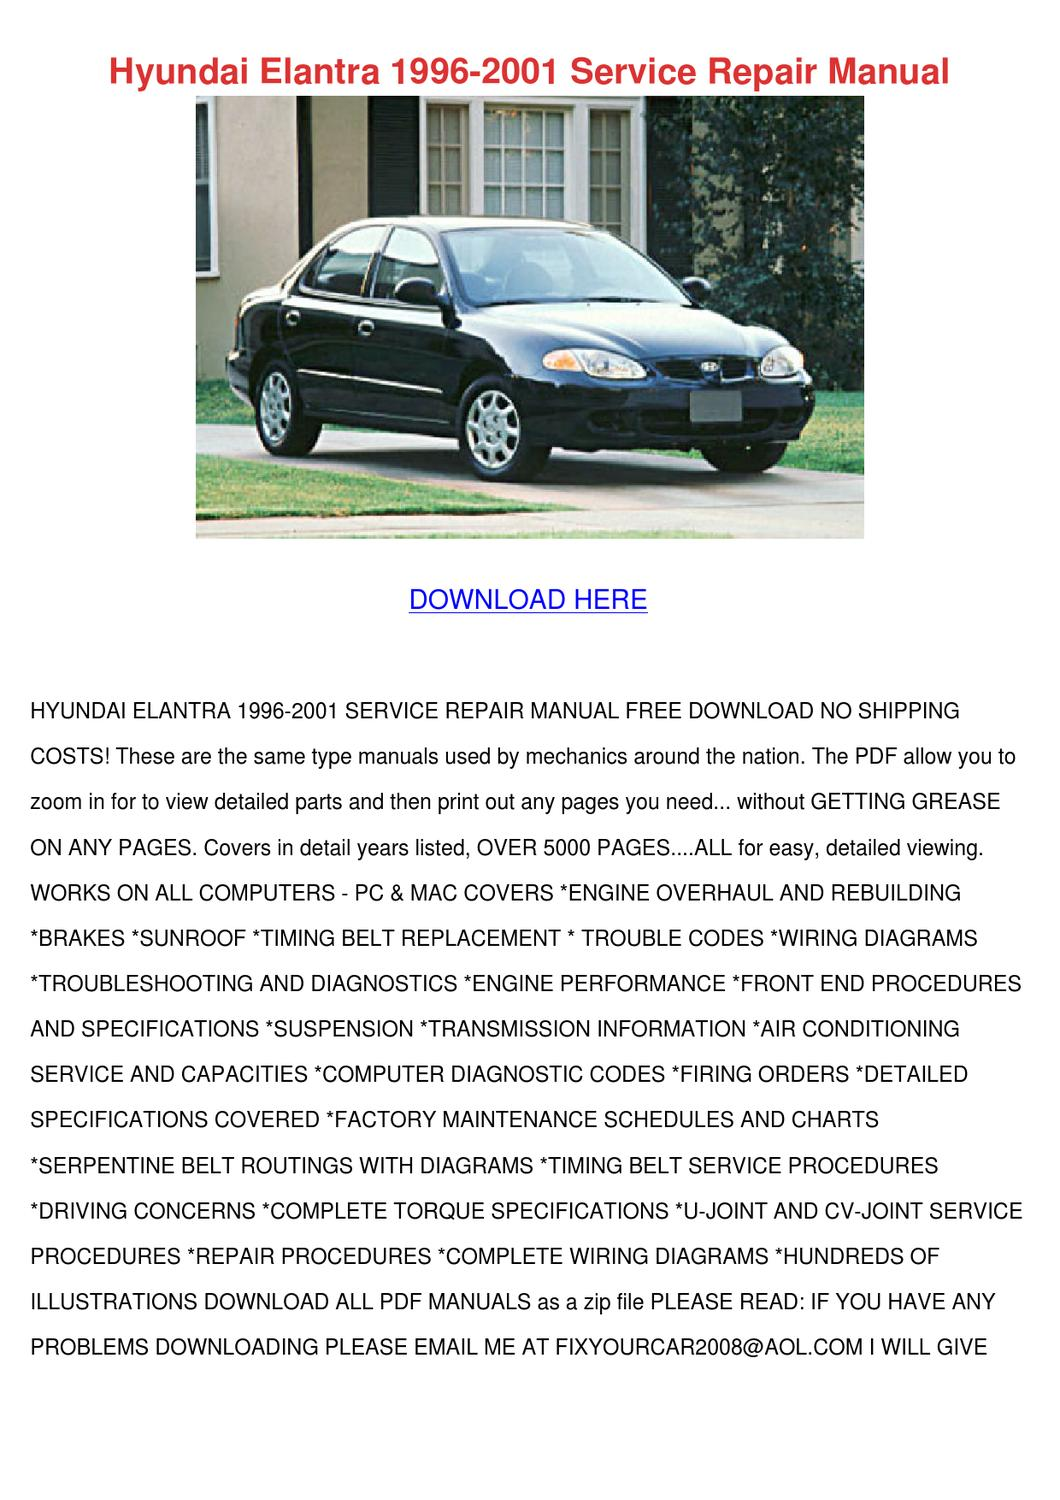 2001 hyundai elantra repair manual free download